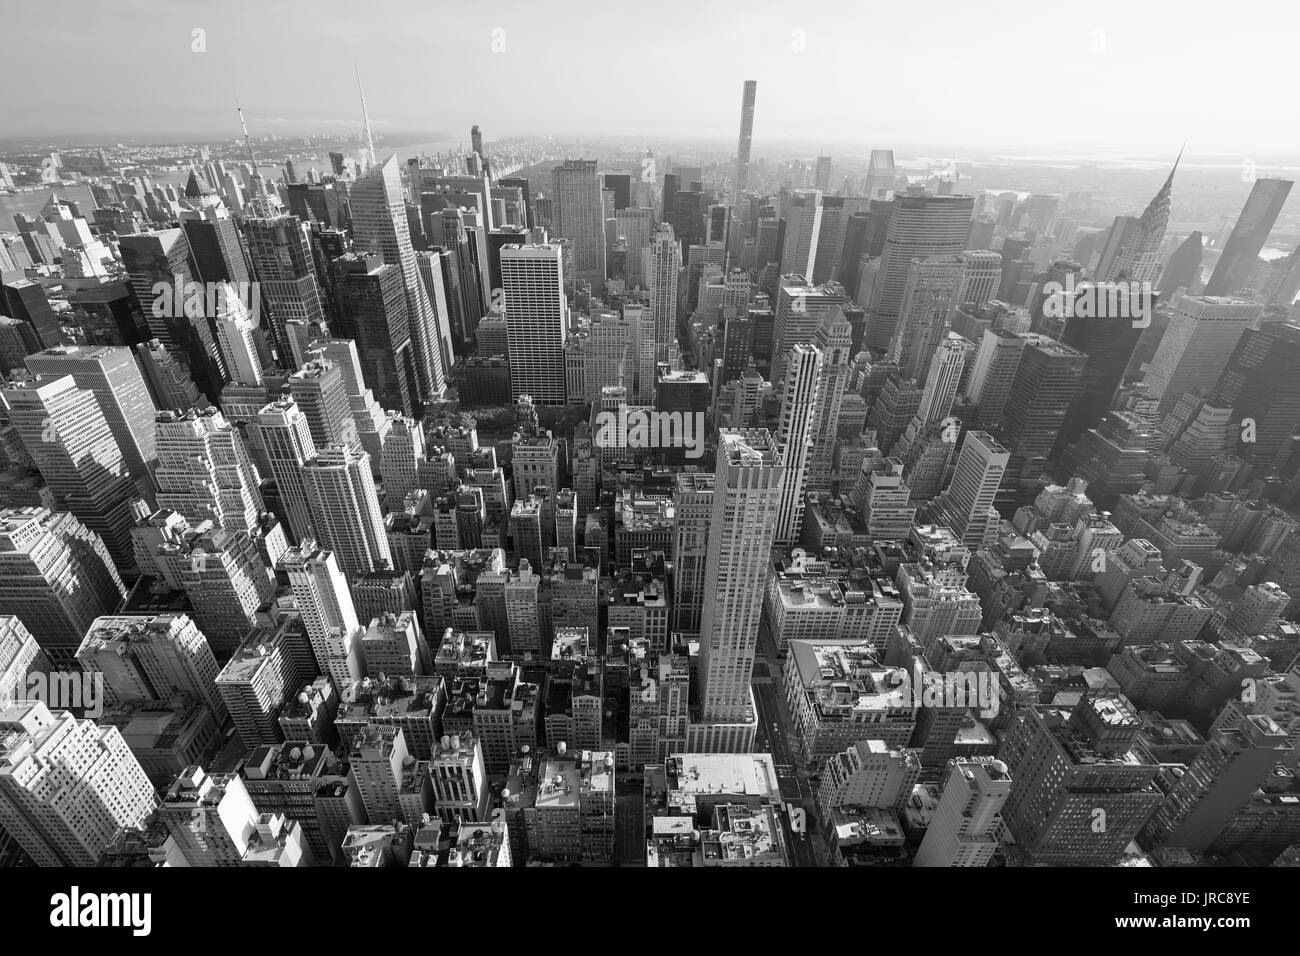 New York City Manhattan Skyline Black And White Aerial View With Skyscrapers Wide Angle